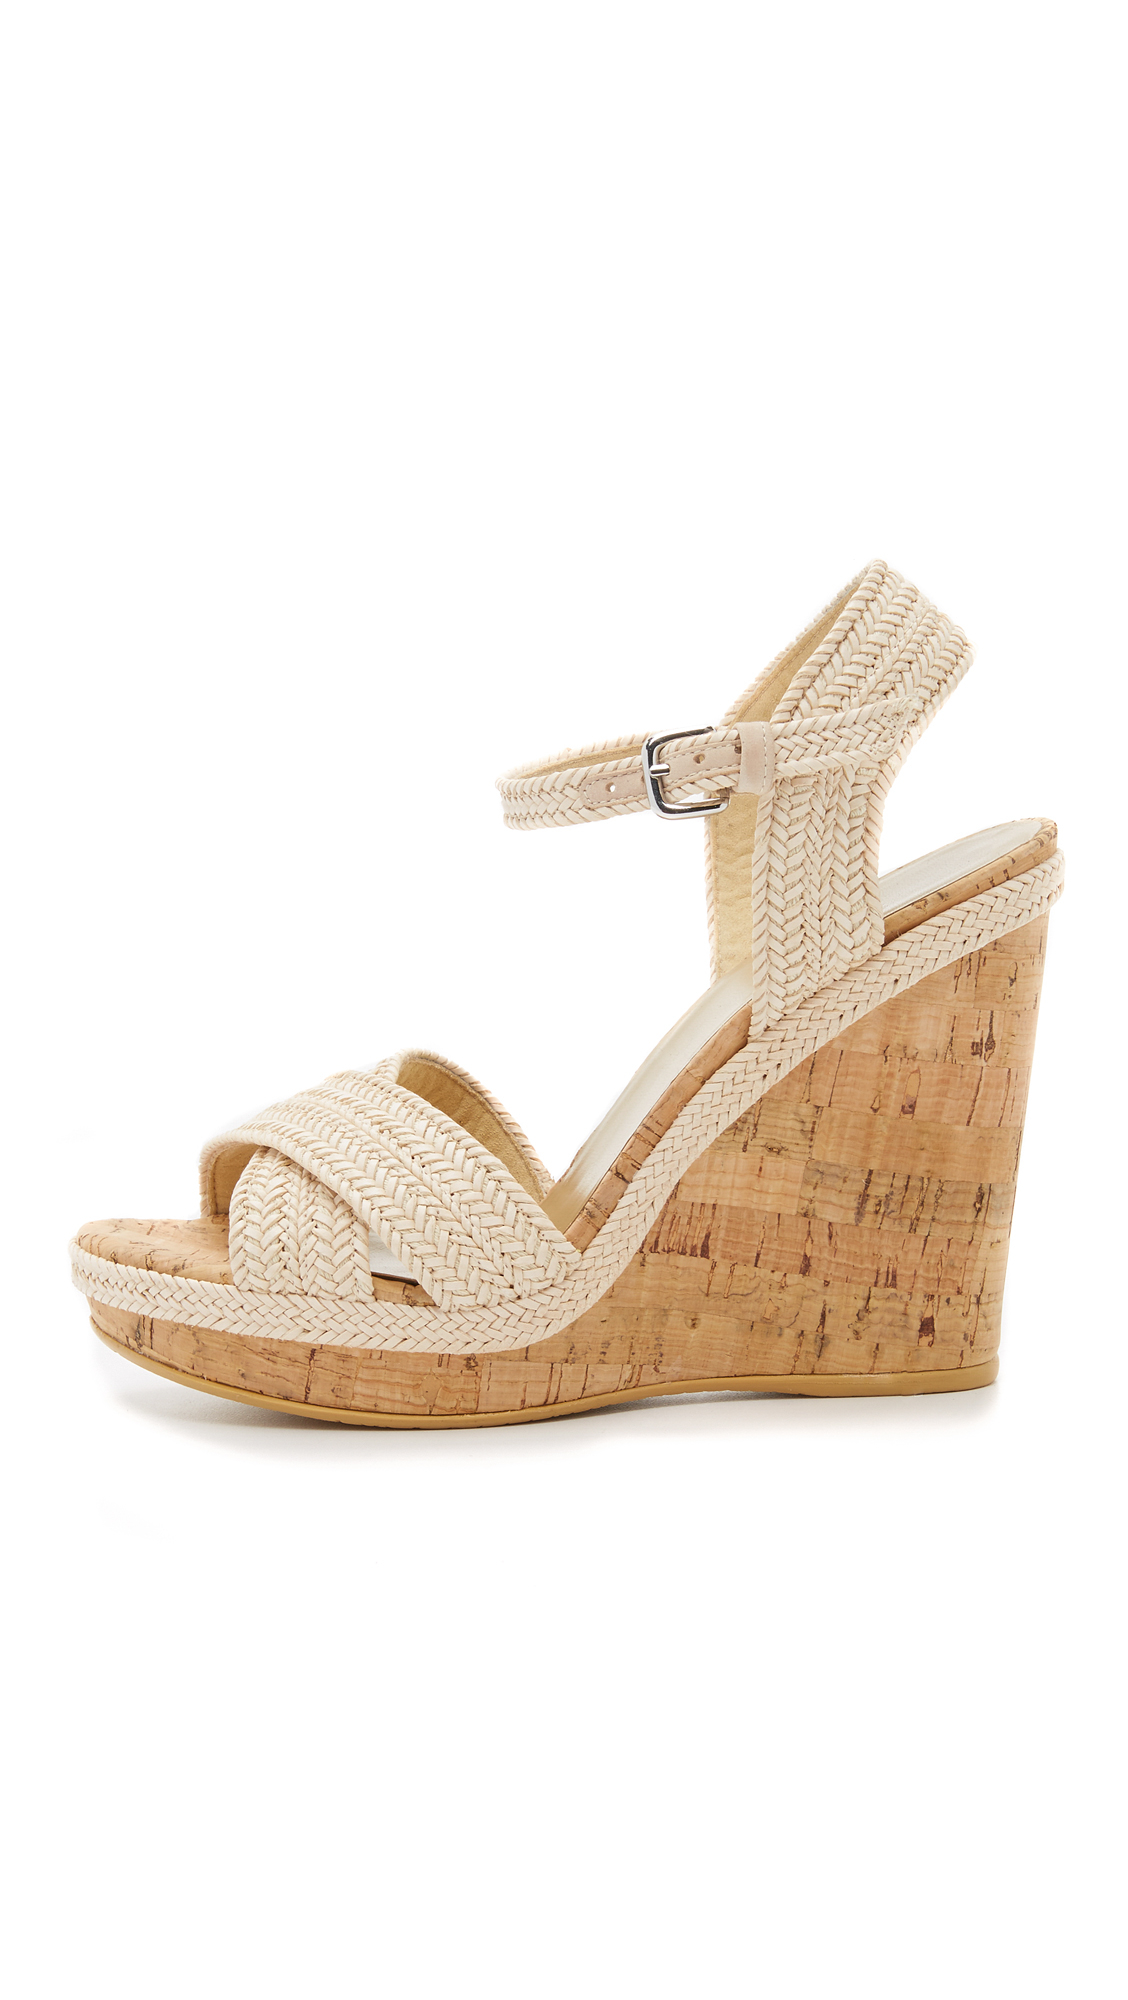 Lyst Stuart Weitzman Minx Wedge Sandals In White